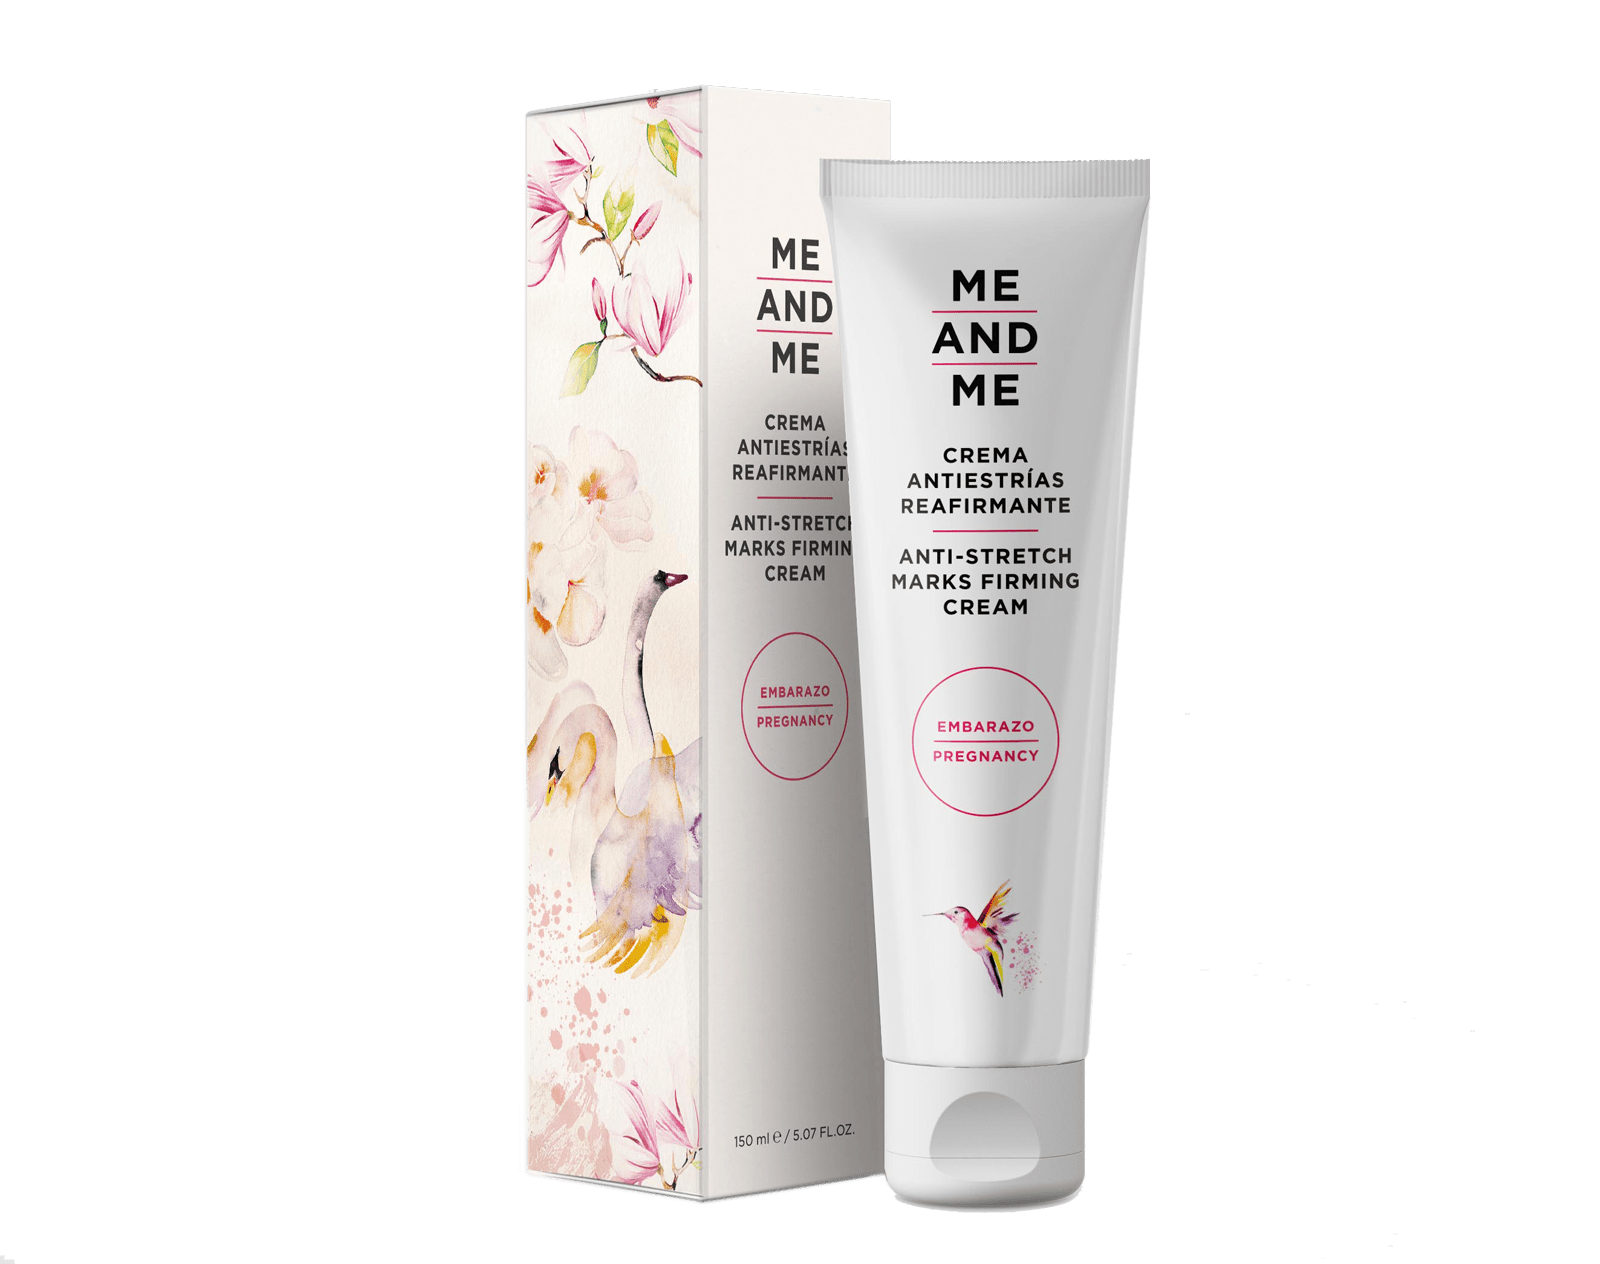 Me And Me Anti Stretch Marks Firming Cream Pregnancy